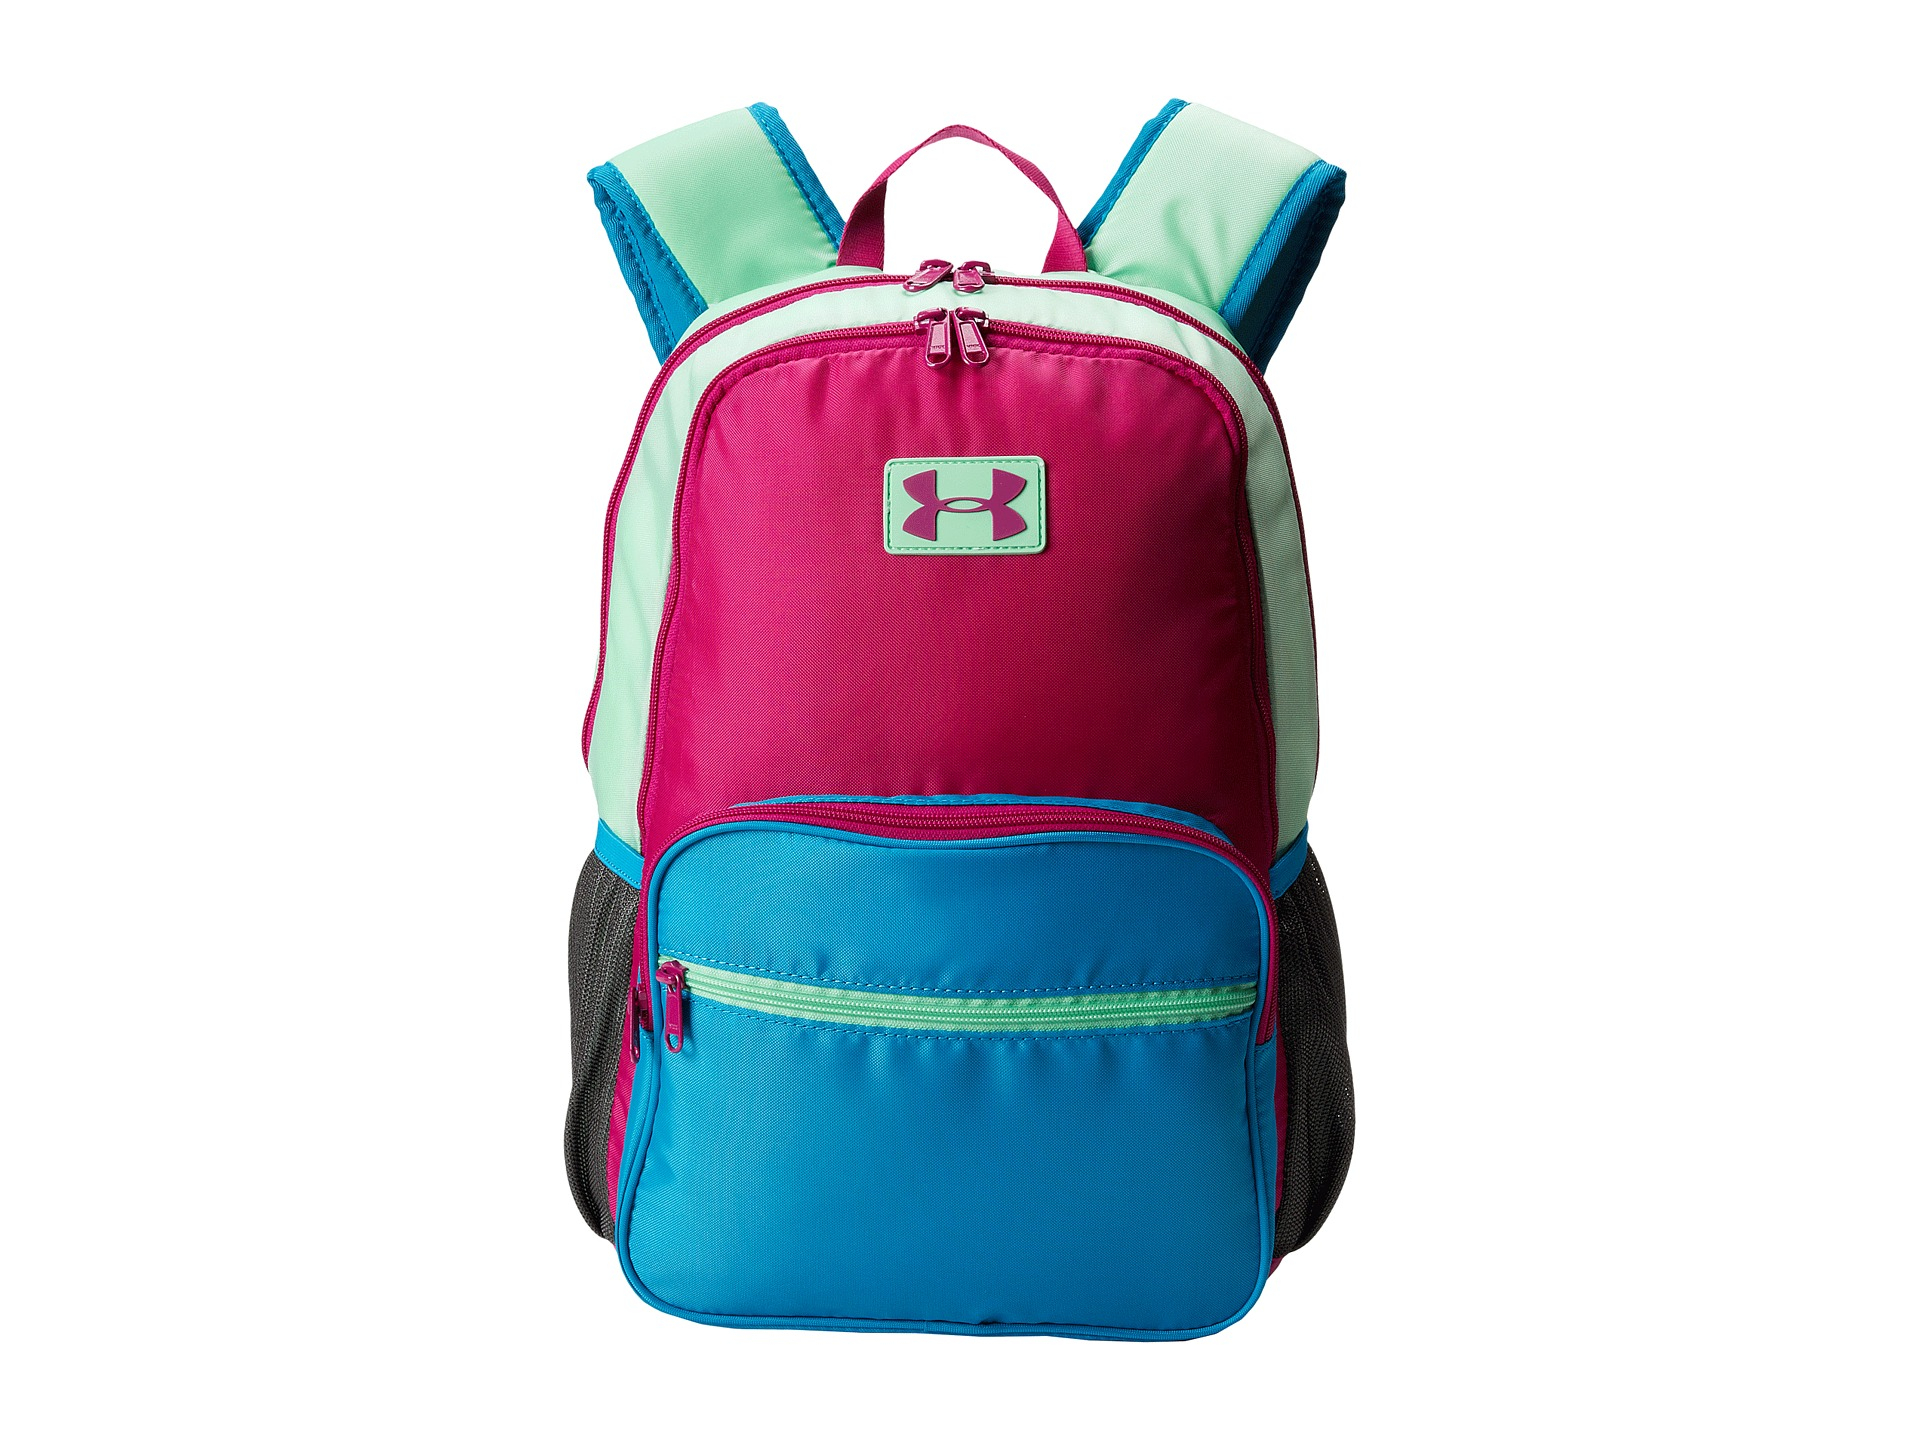 Lyst - Under Armour Ua Great Escape Backpack (Big Kid) 3291a18bdab5f